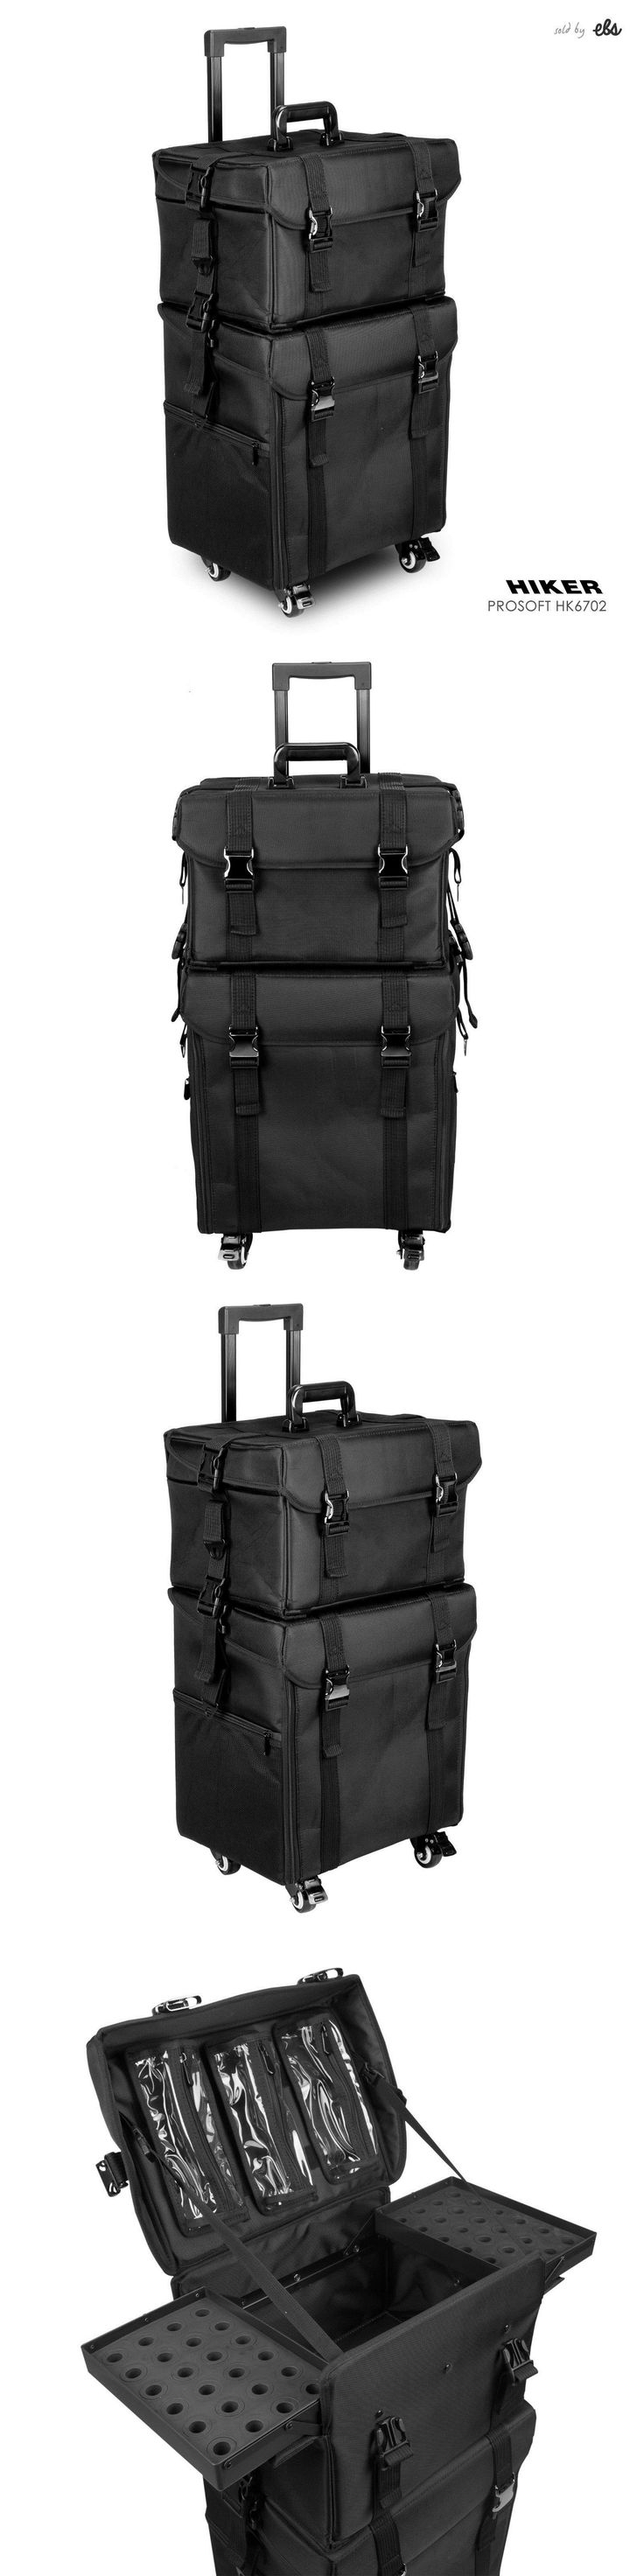 Rolling Makeup Cases: Professional Rolling Makeup Train Case Soft Sided Nylon Black Organizer Trolley -> BUY IT NOW ONLY: $229 on eBay!